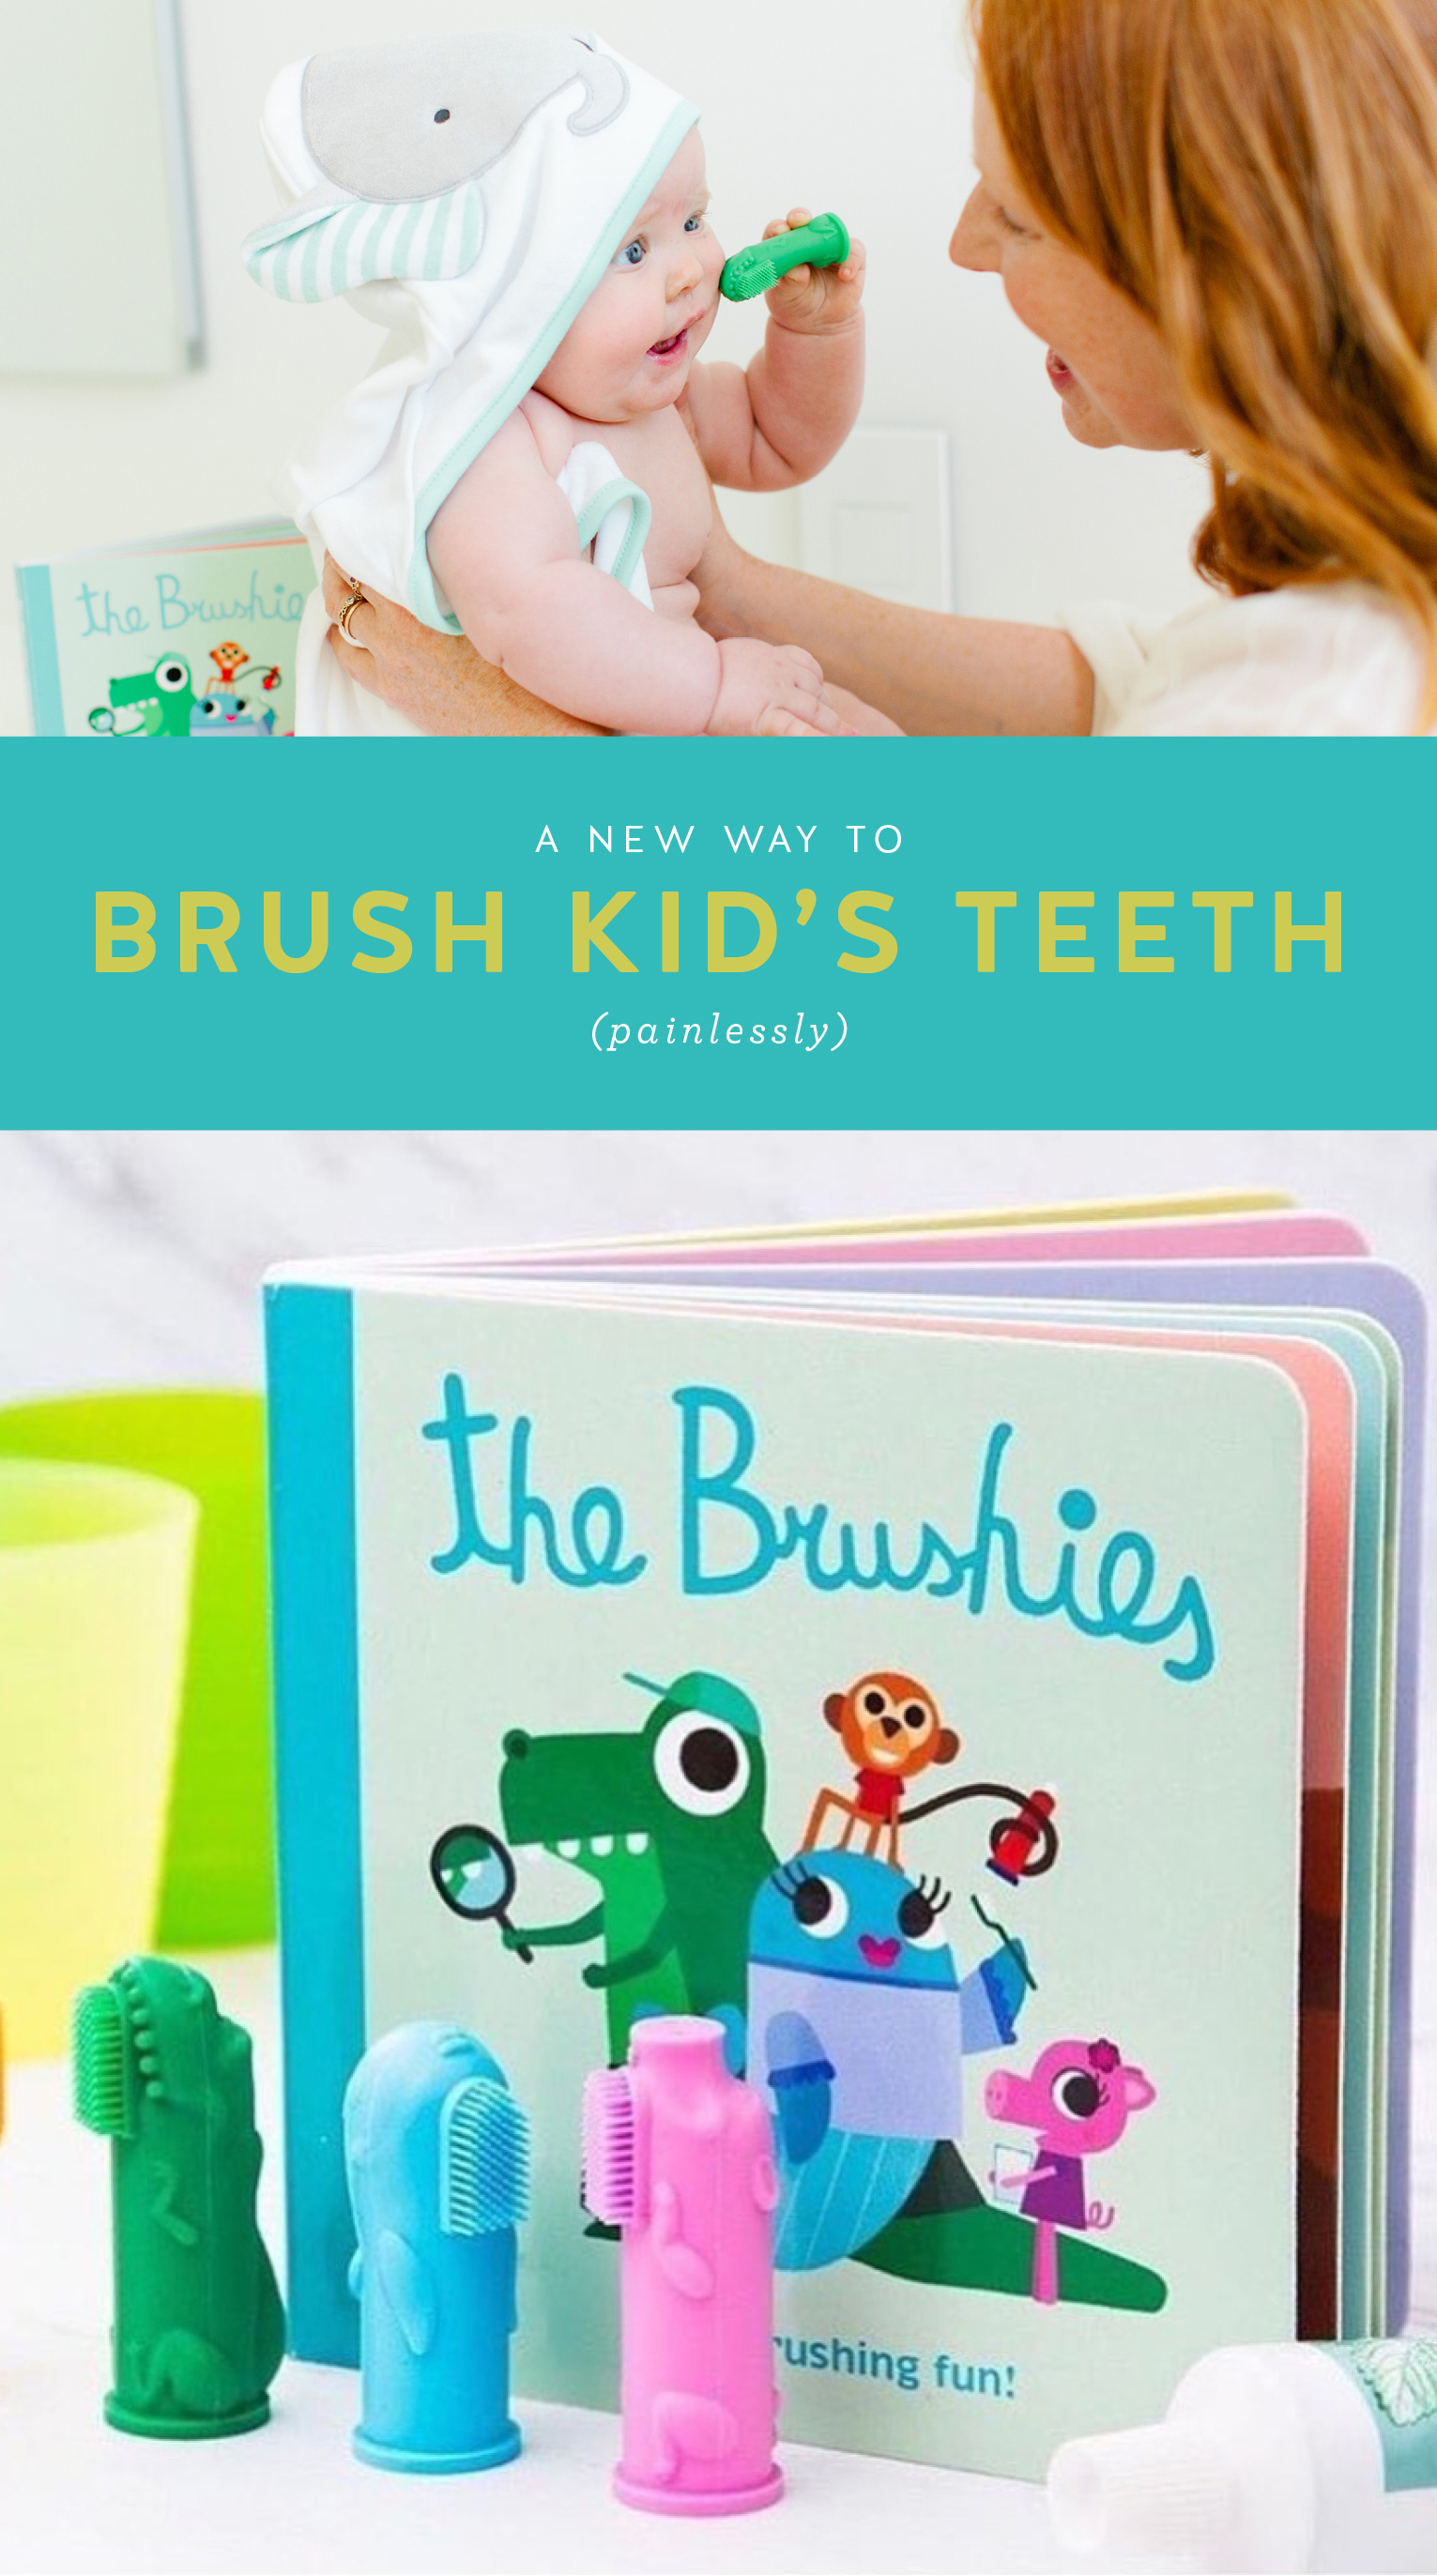 Mom helps baby brush teeth with brushies. Brushies book and toothbrushes.